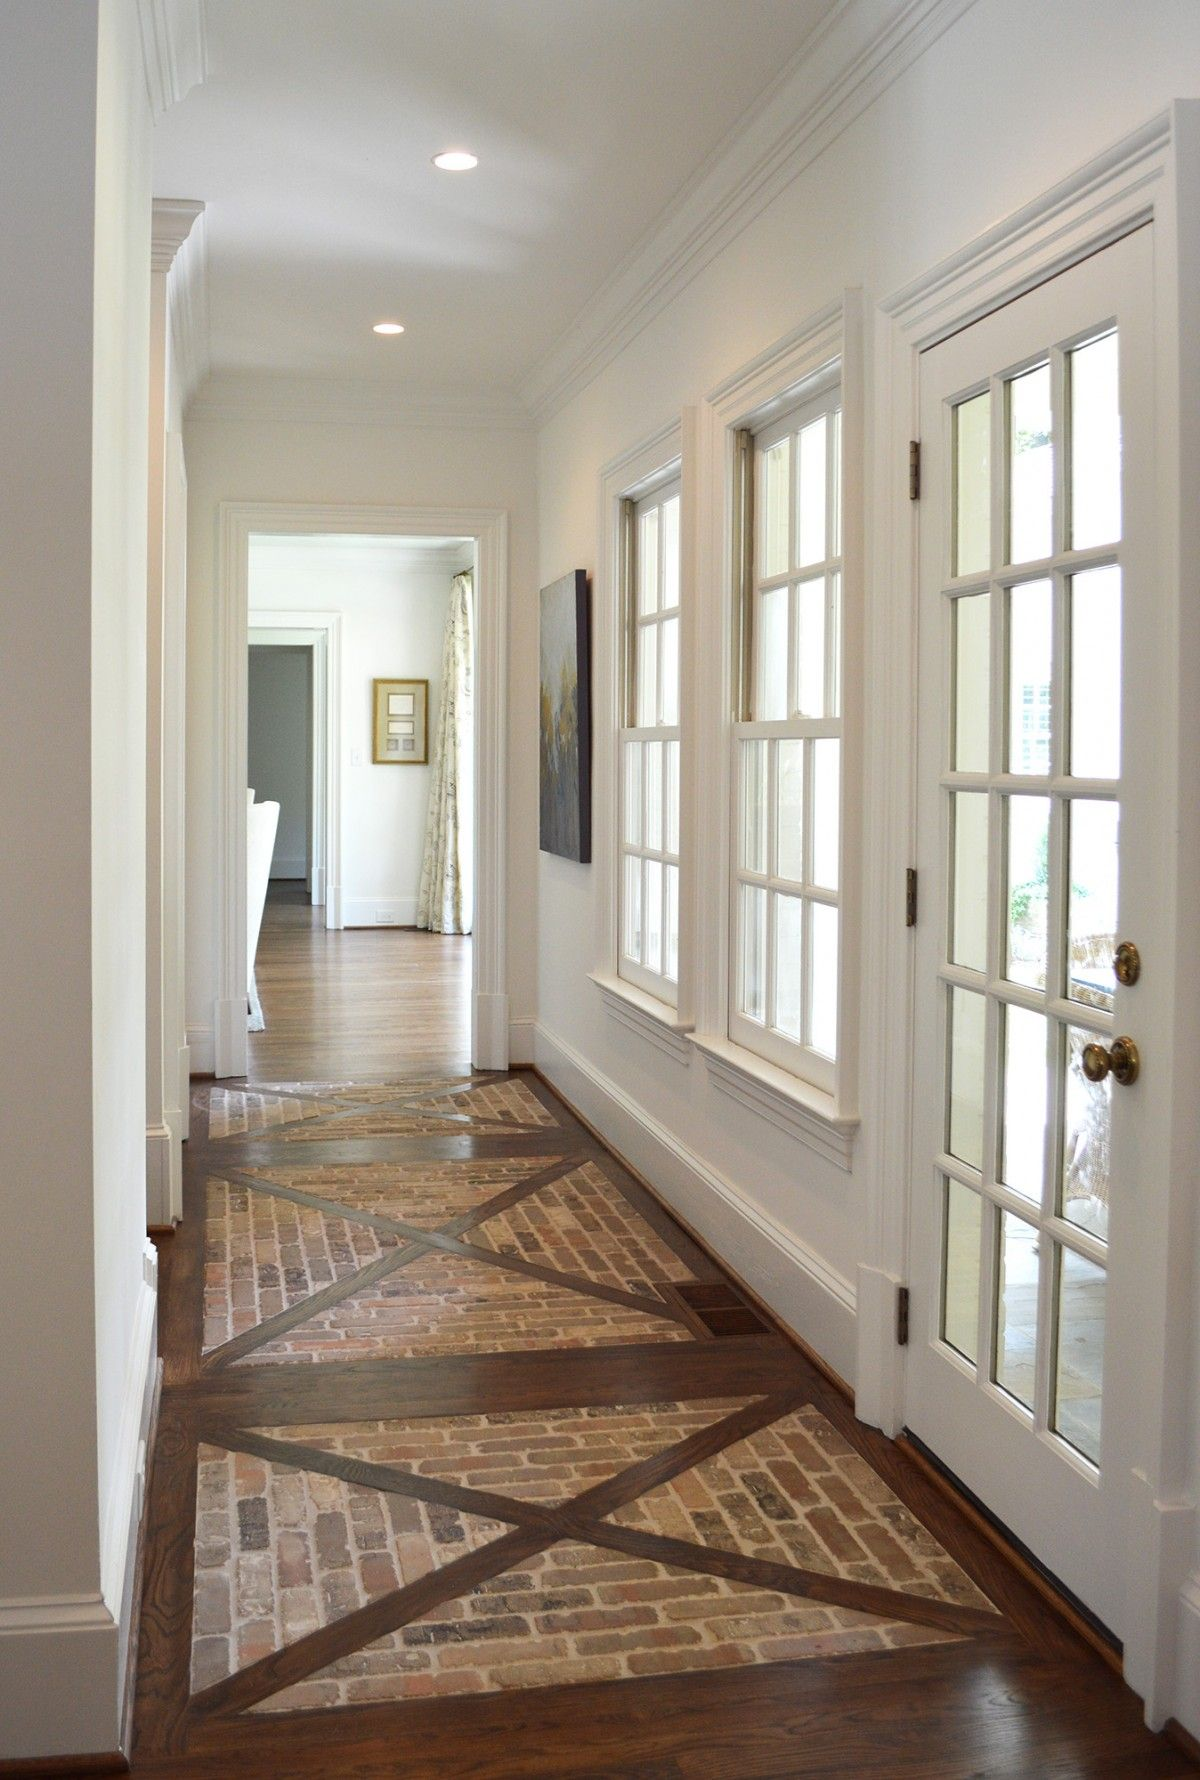 Brick And Wood Floor Home In 2019 Brick Flooring Entryway Flooring Floor Design